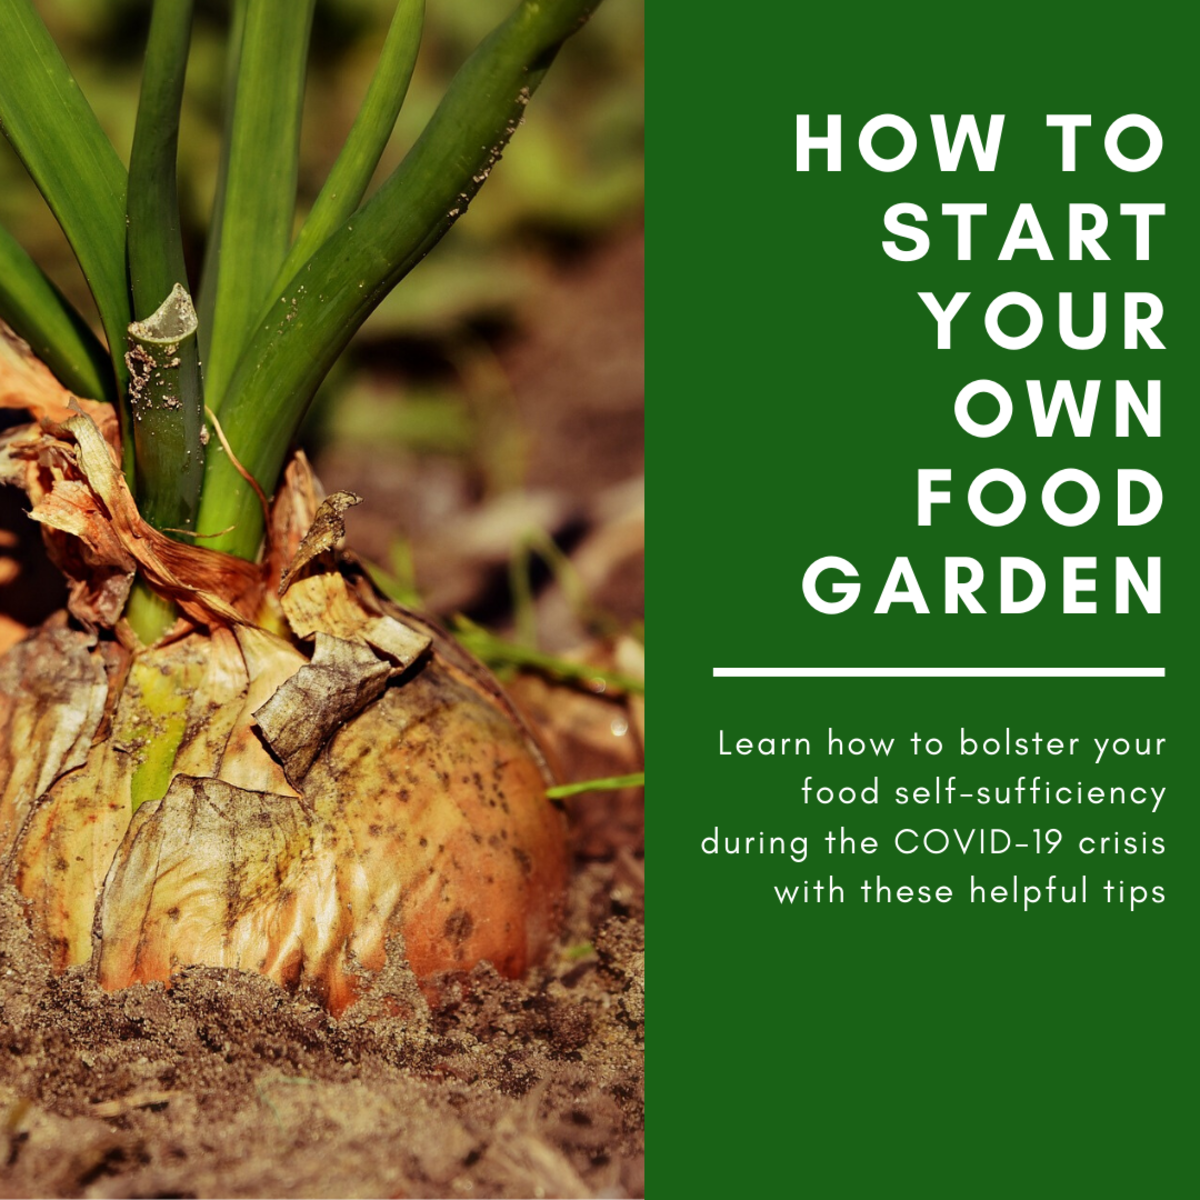 This guide will break down how to bolster your food self-sufficiency by starting your own food garden with common elements you likely already have around the house.